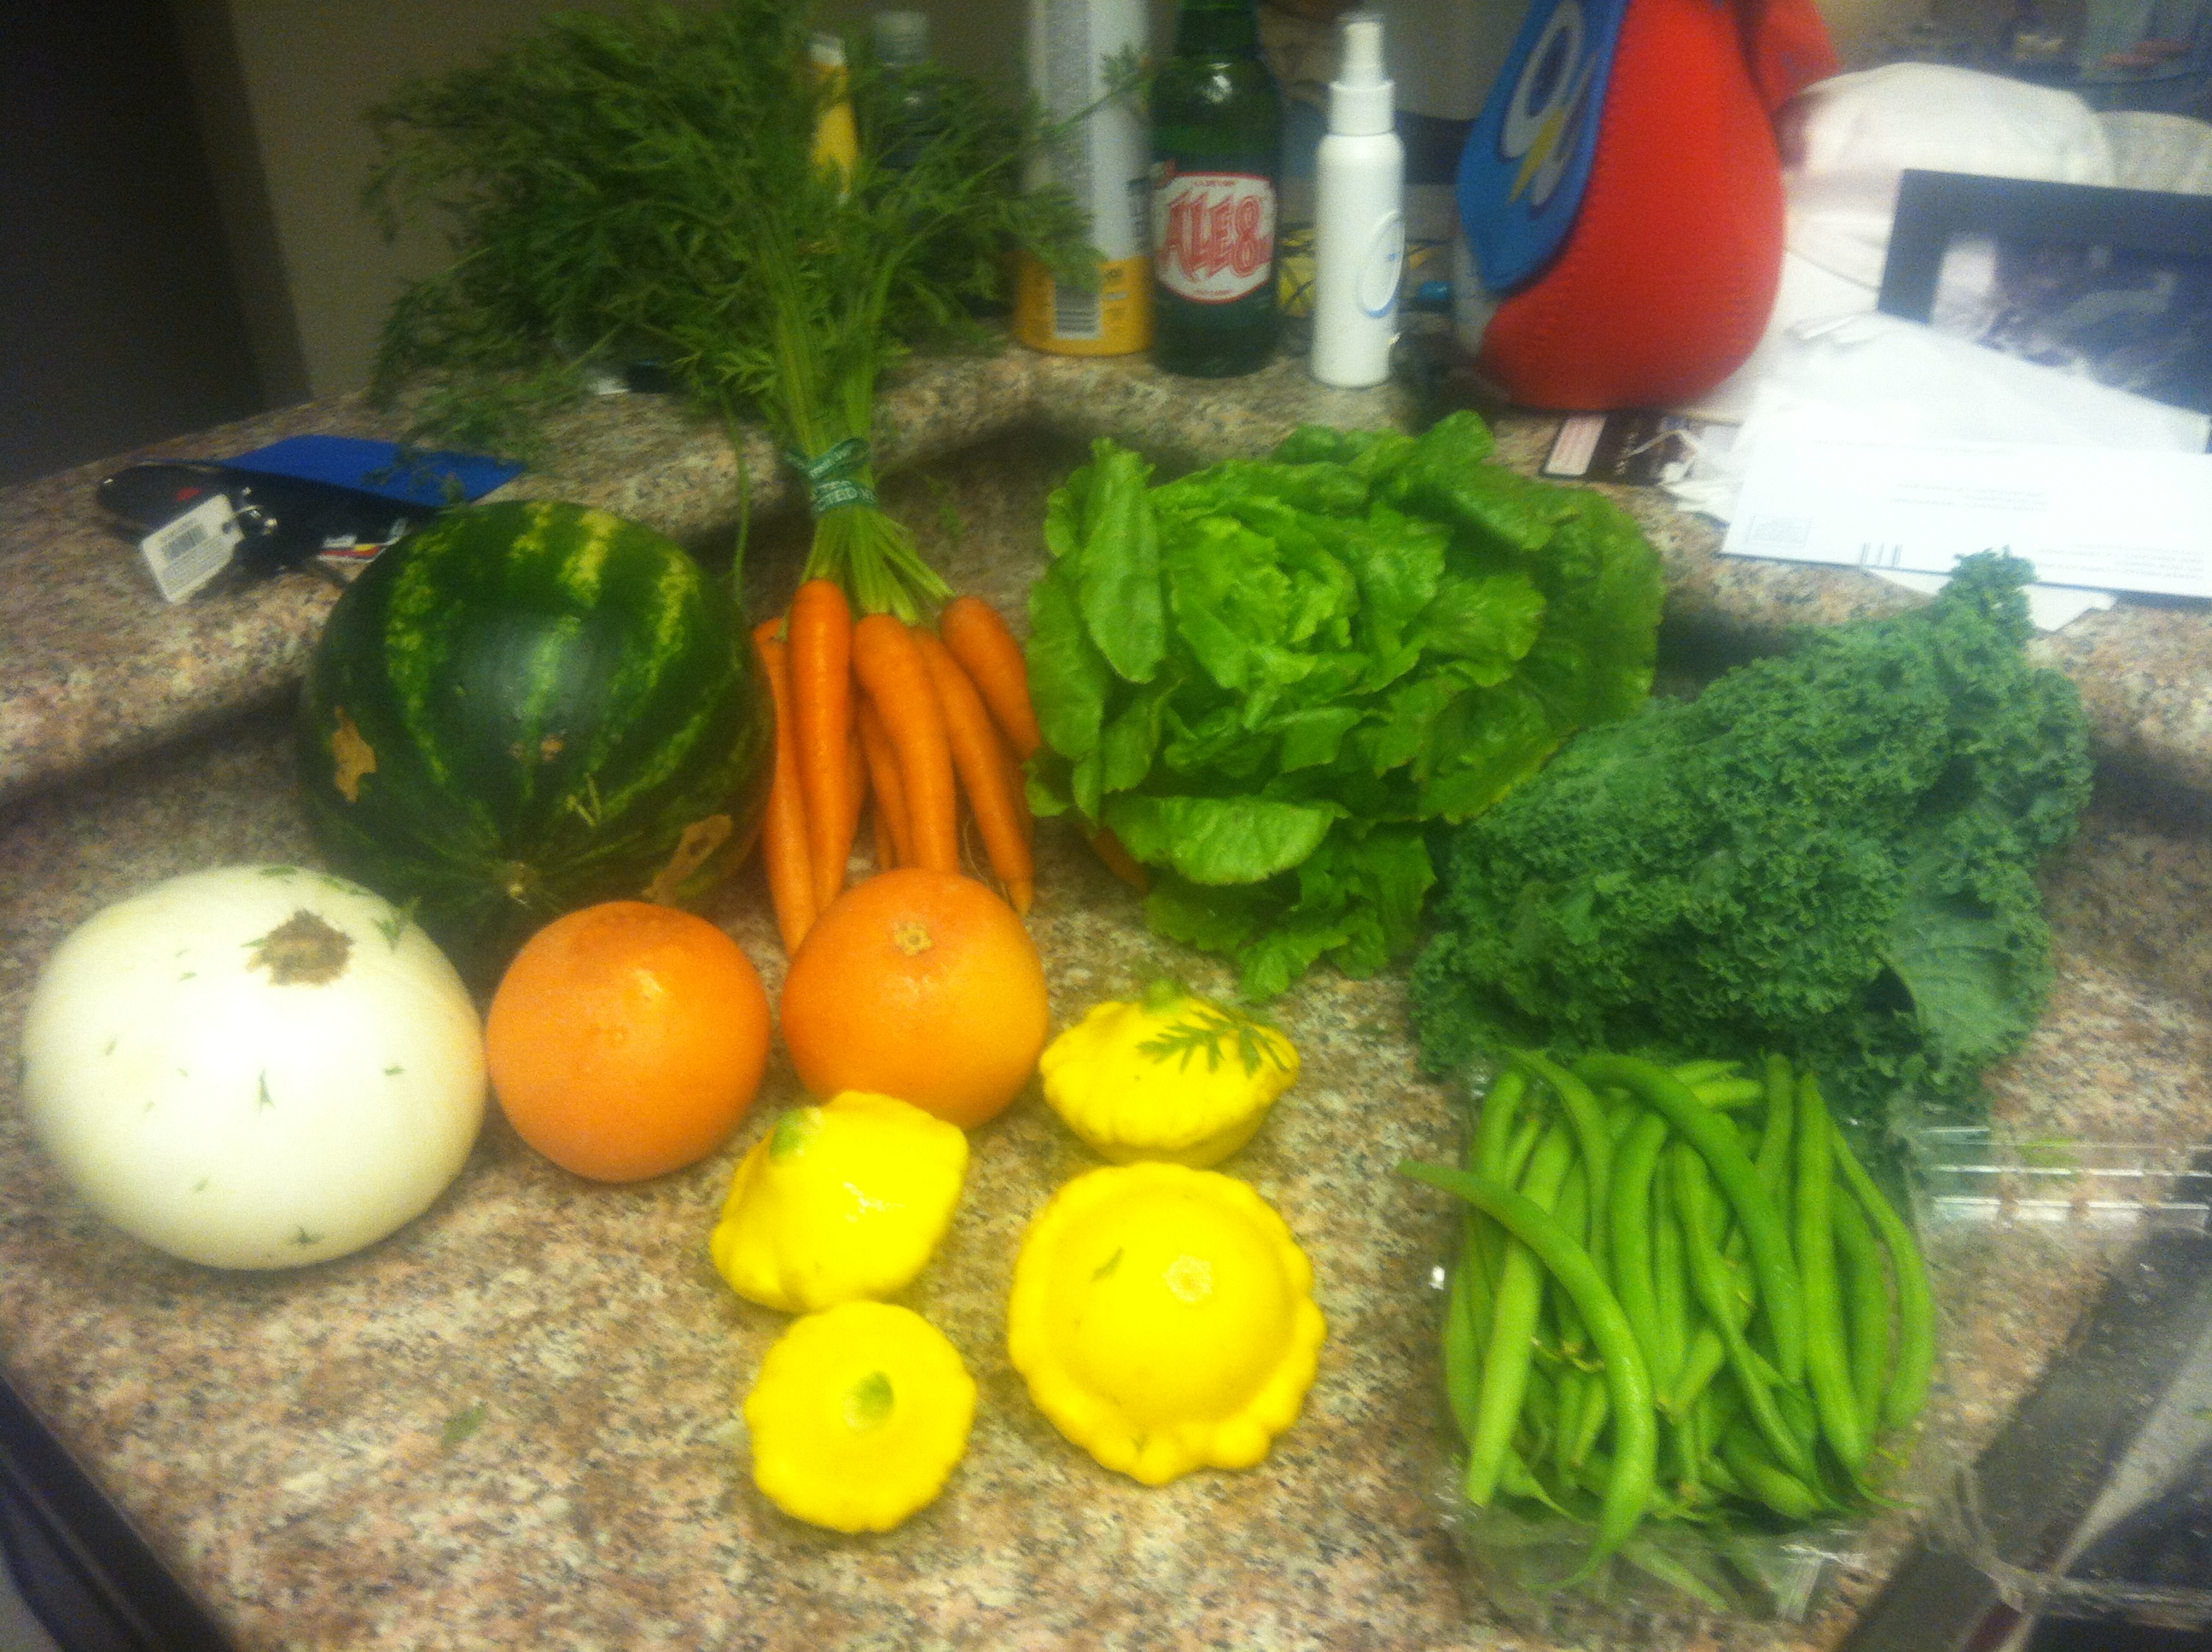 fruits and vegetables on a counter